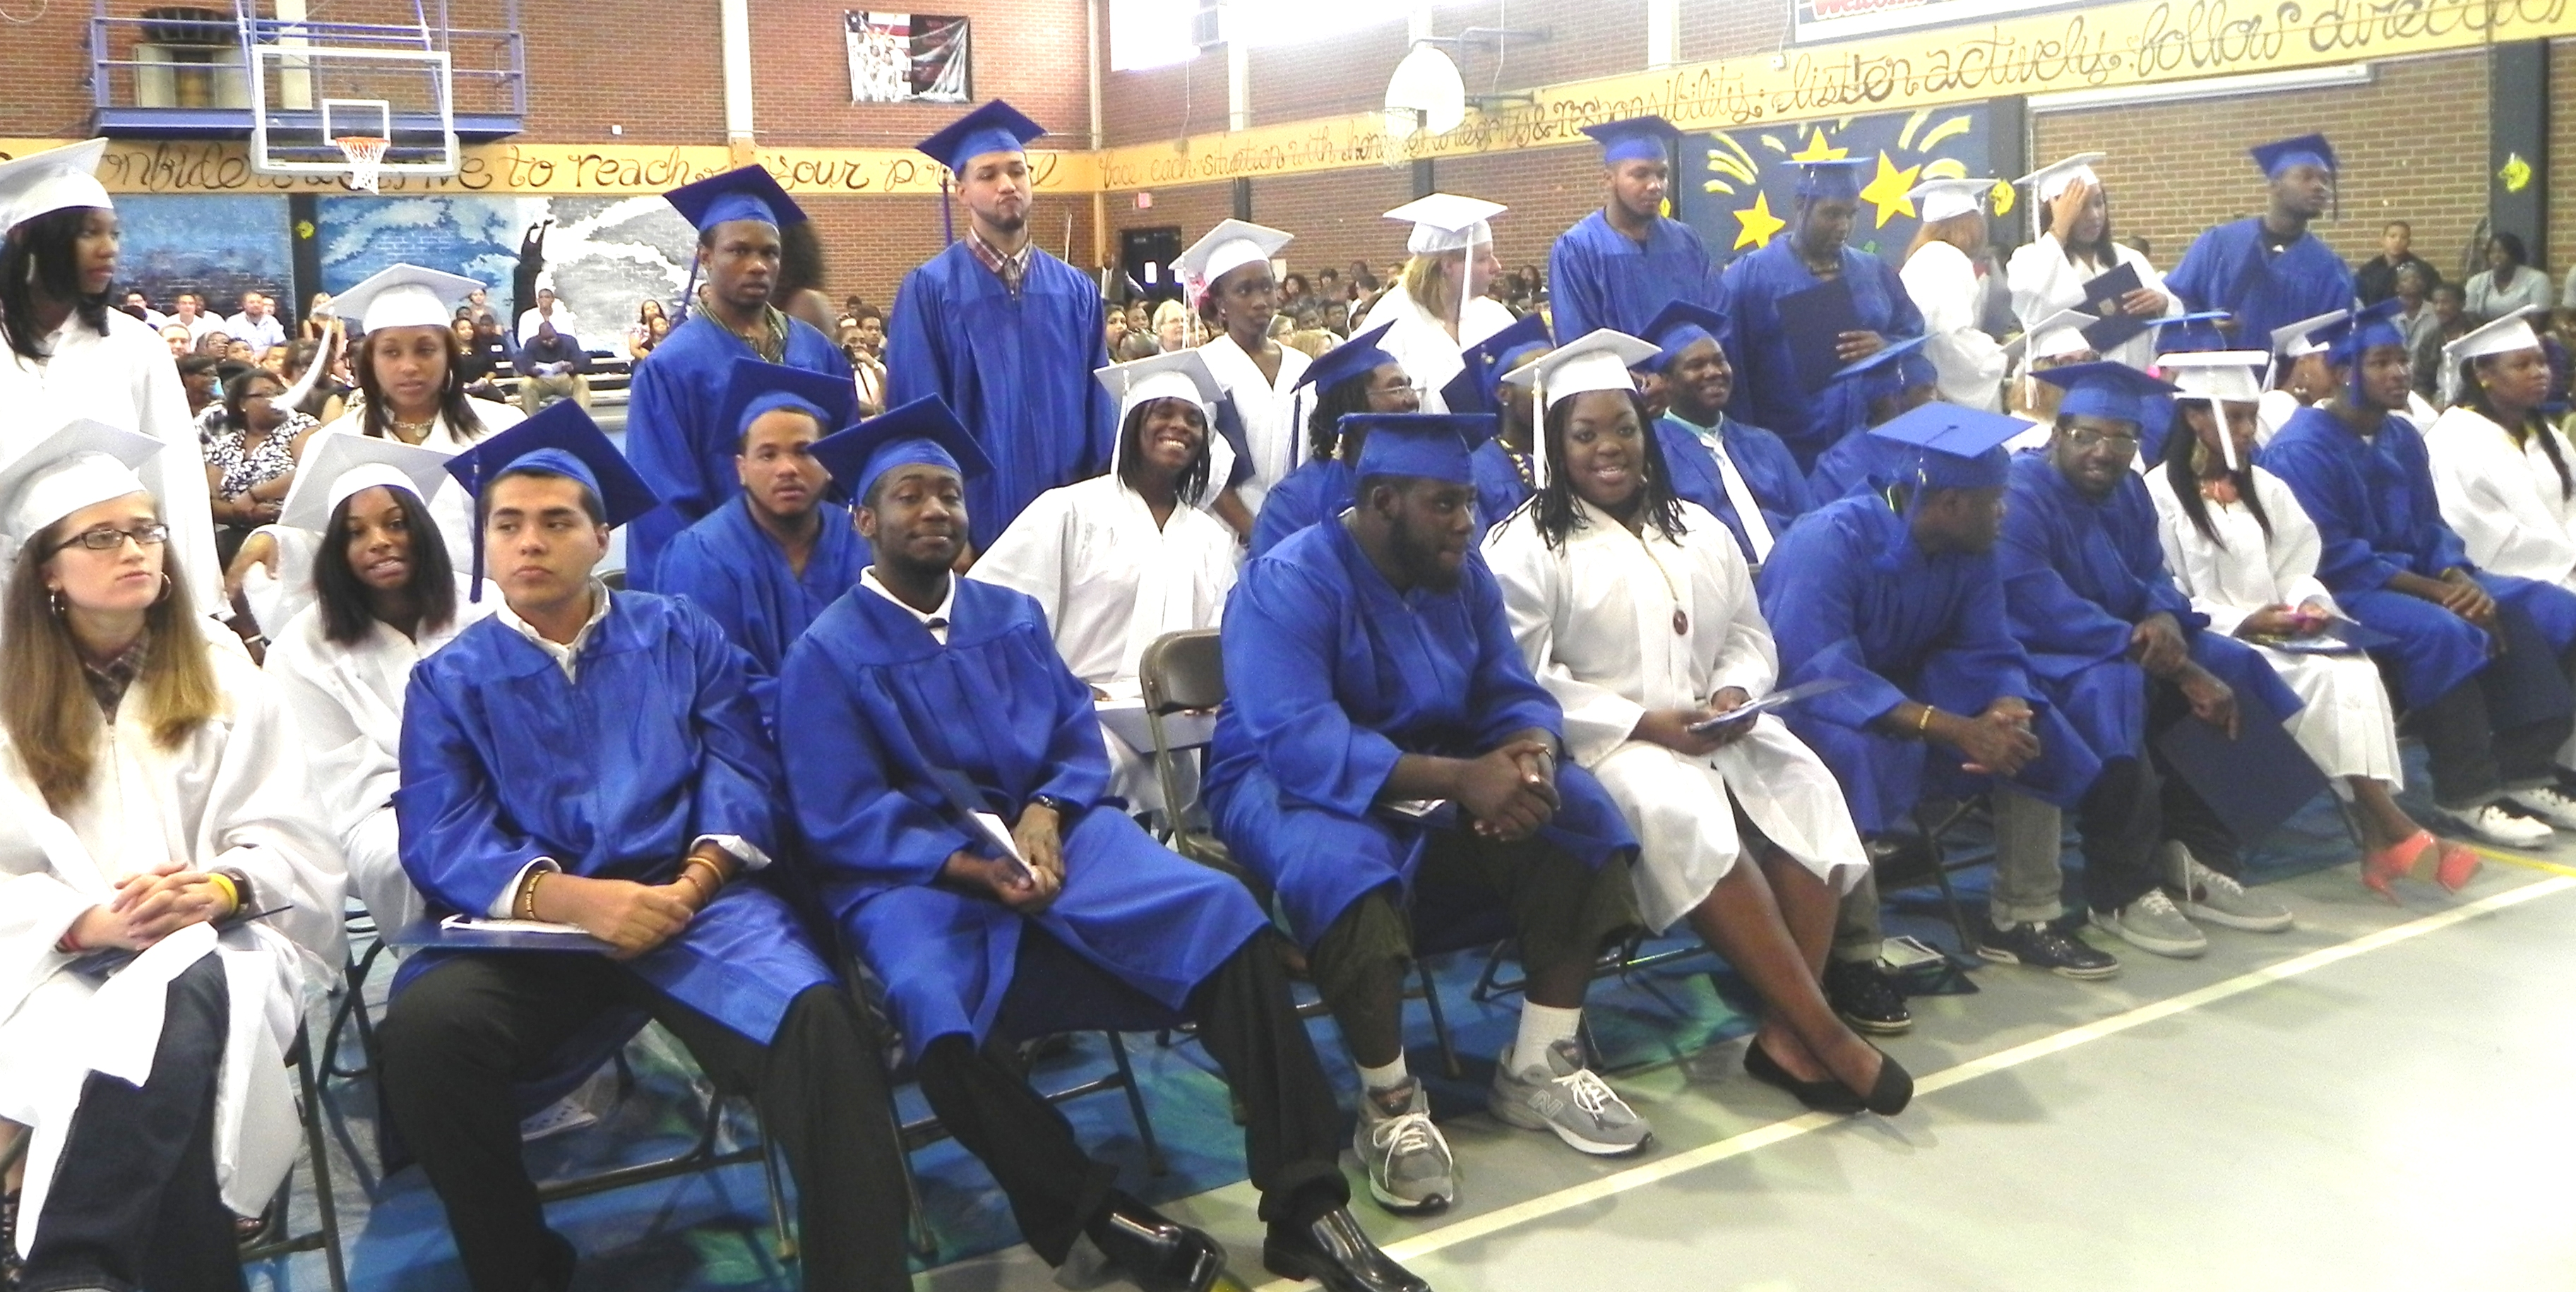 Old Dominion Job Corps Center Students, Staff, and Supporters ...